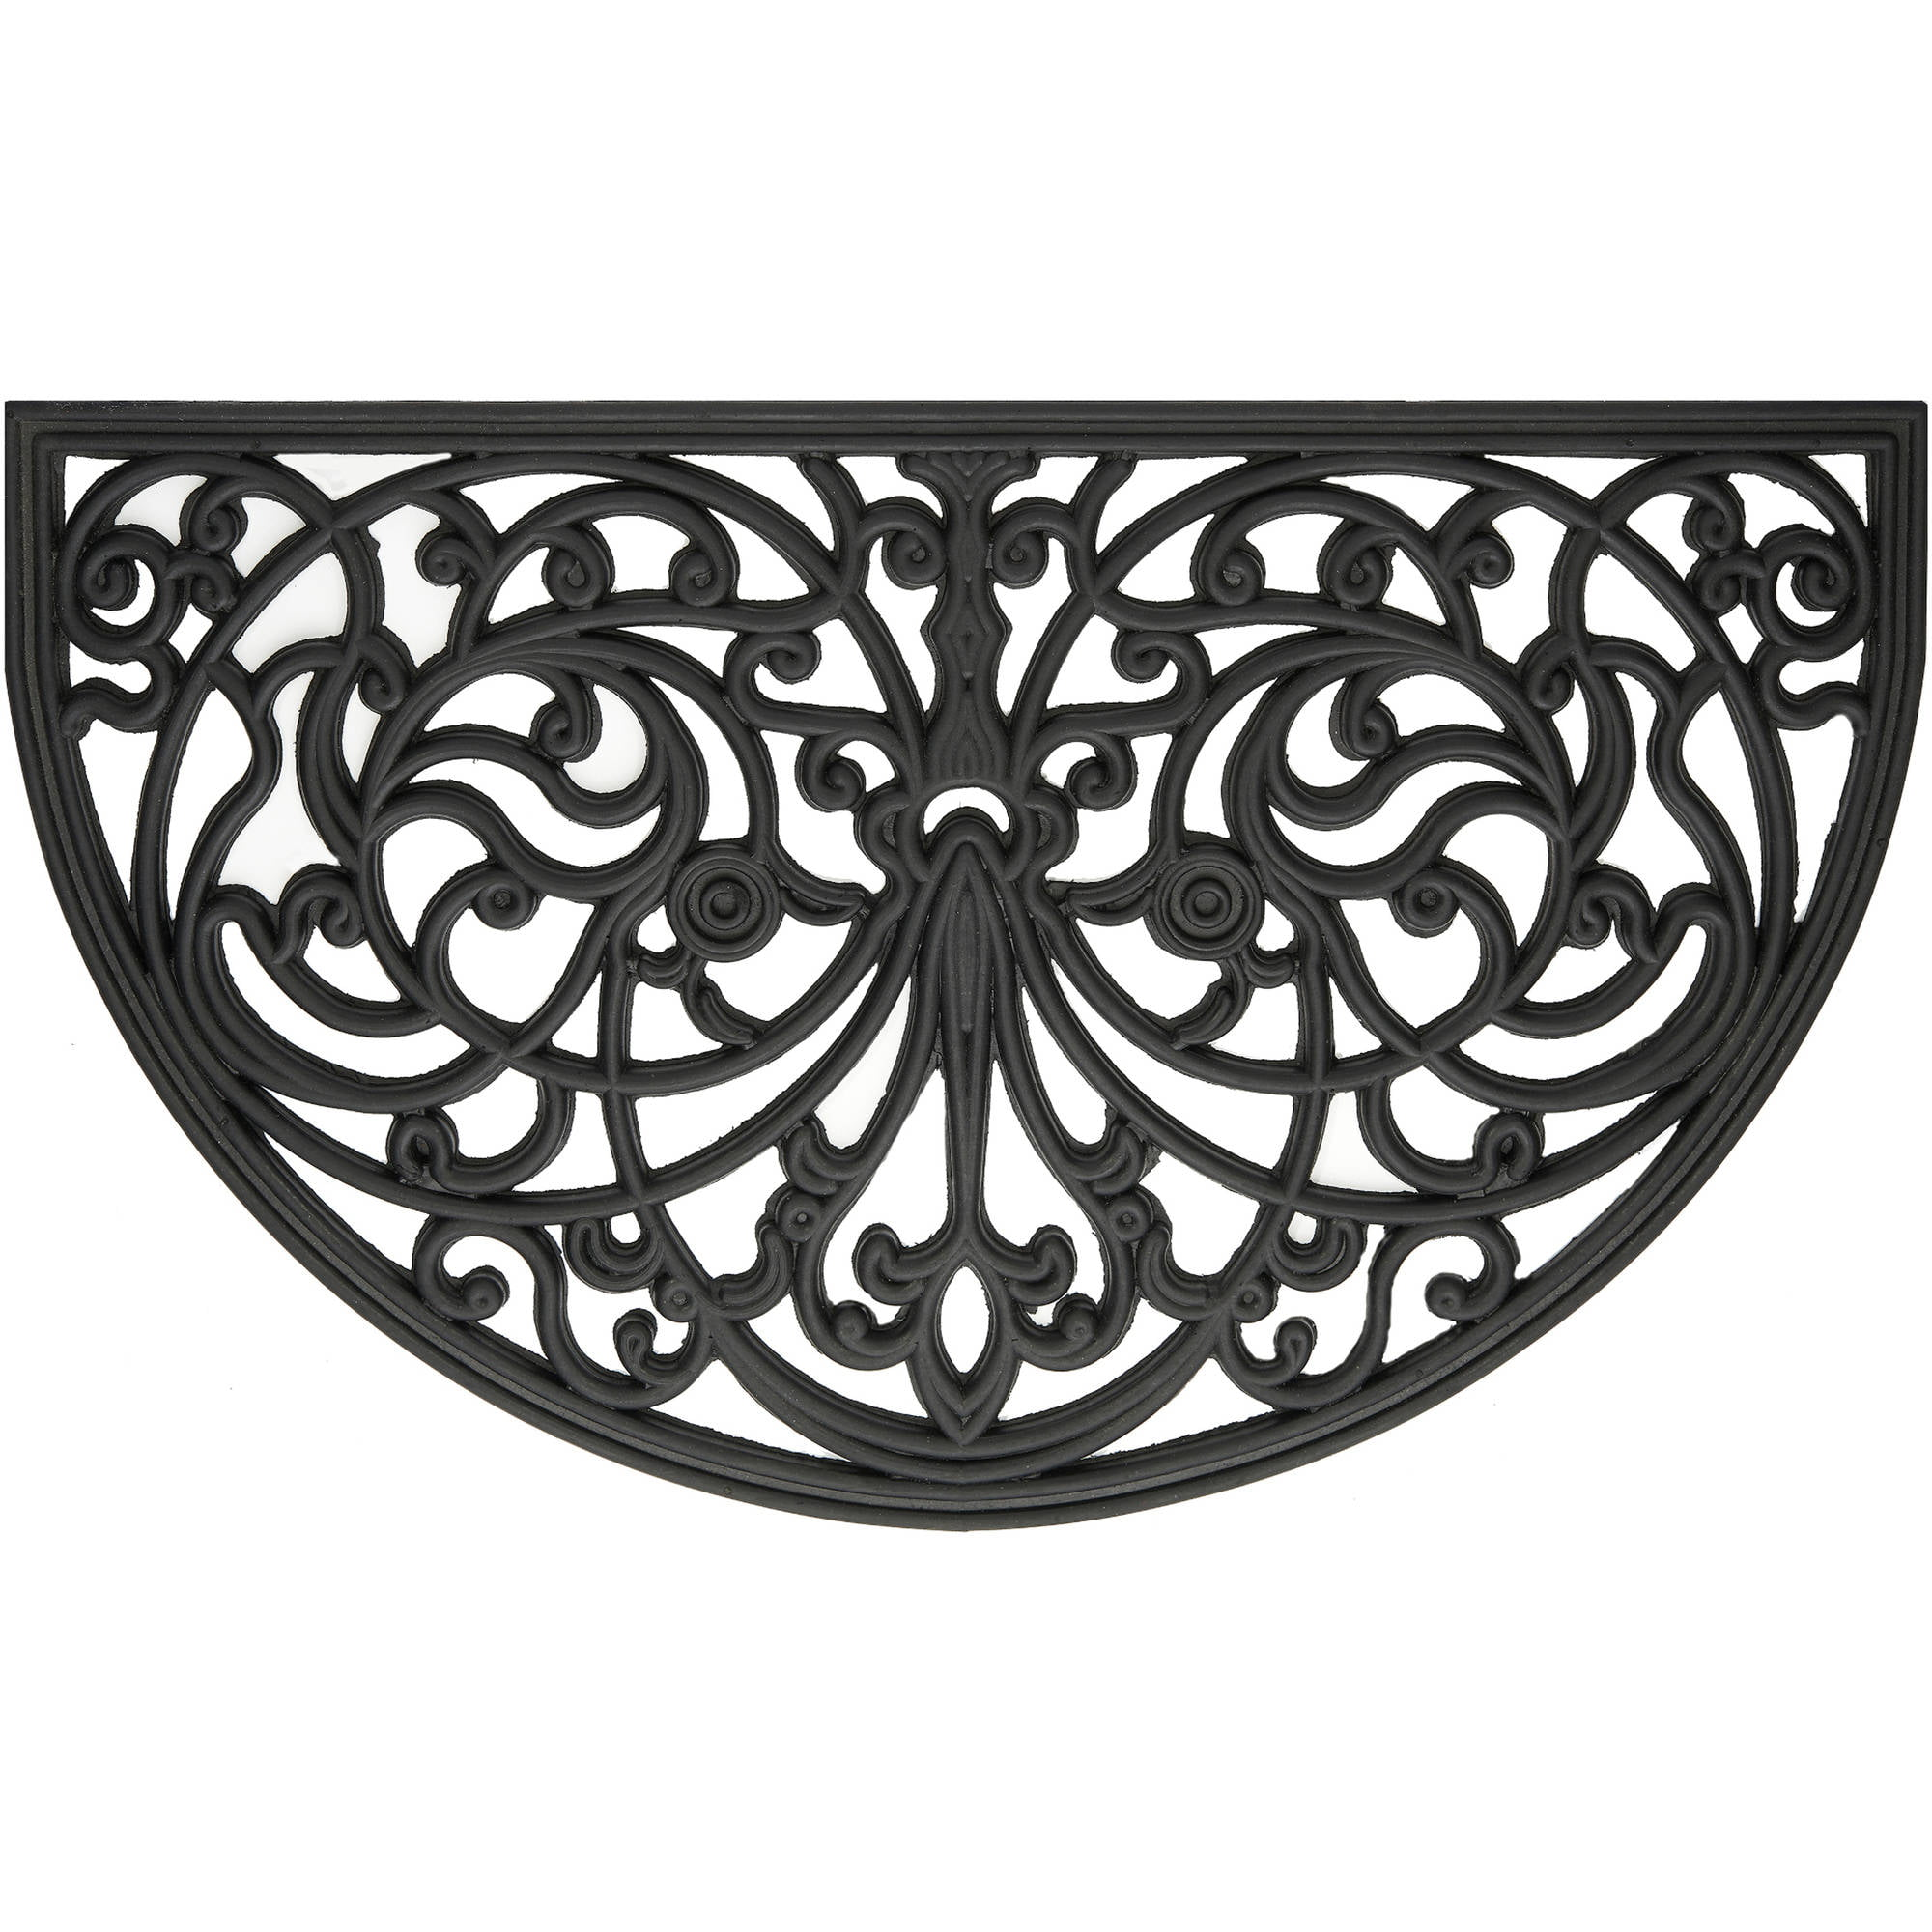 """Wrought Iron Rubber Doormat Ironworks, 18"""" x 30"""" by Achim Importing Co. Inc"""